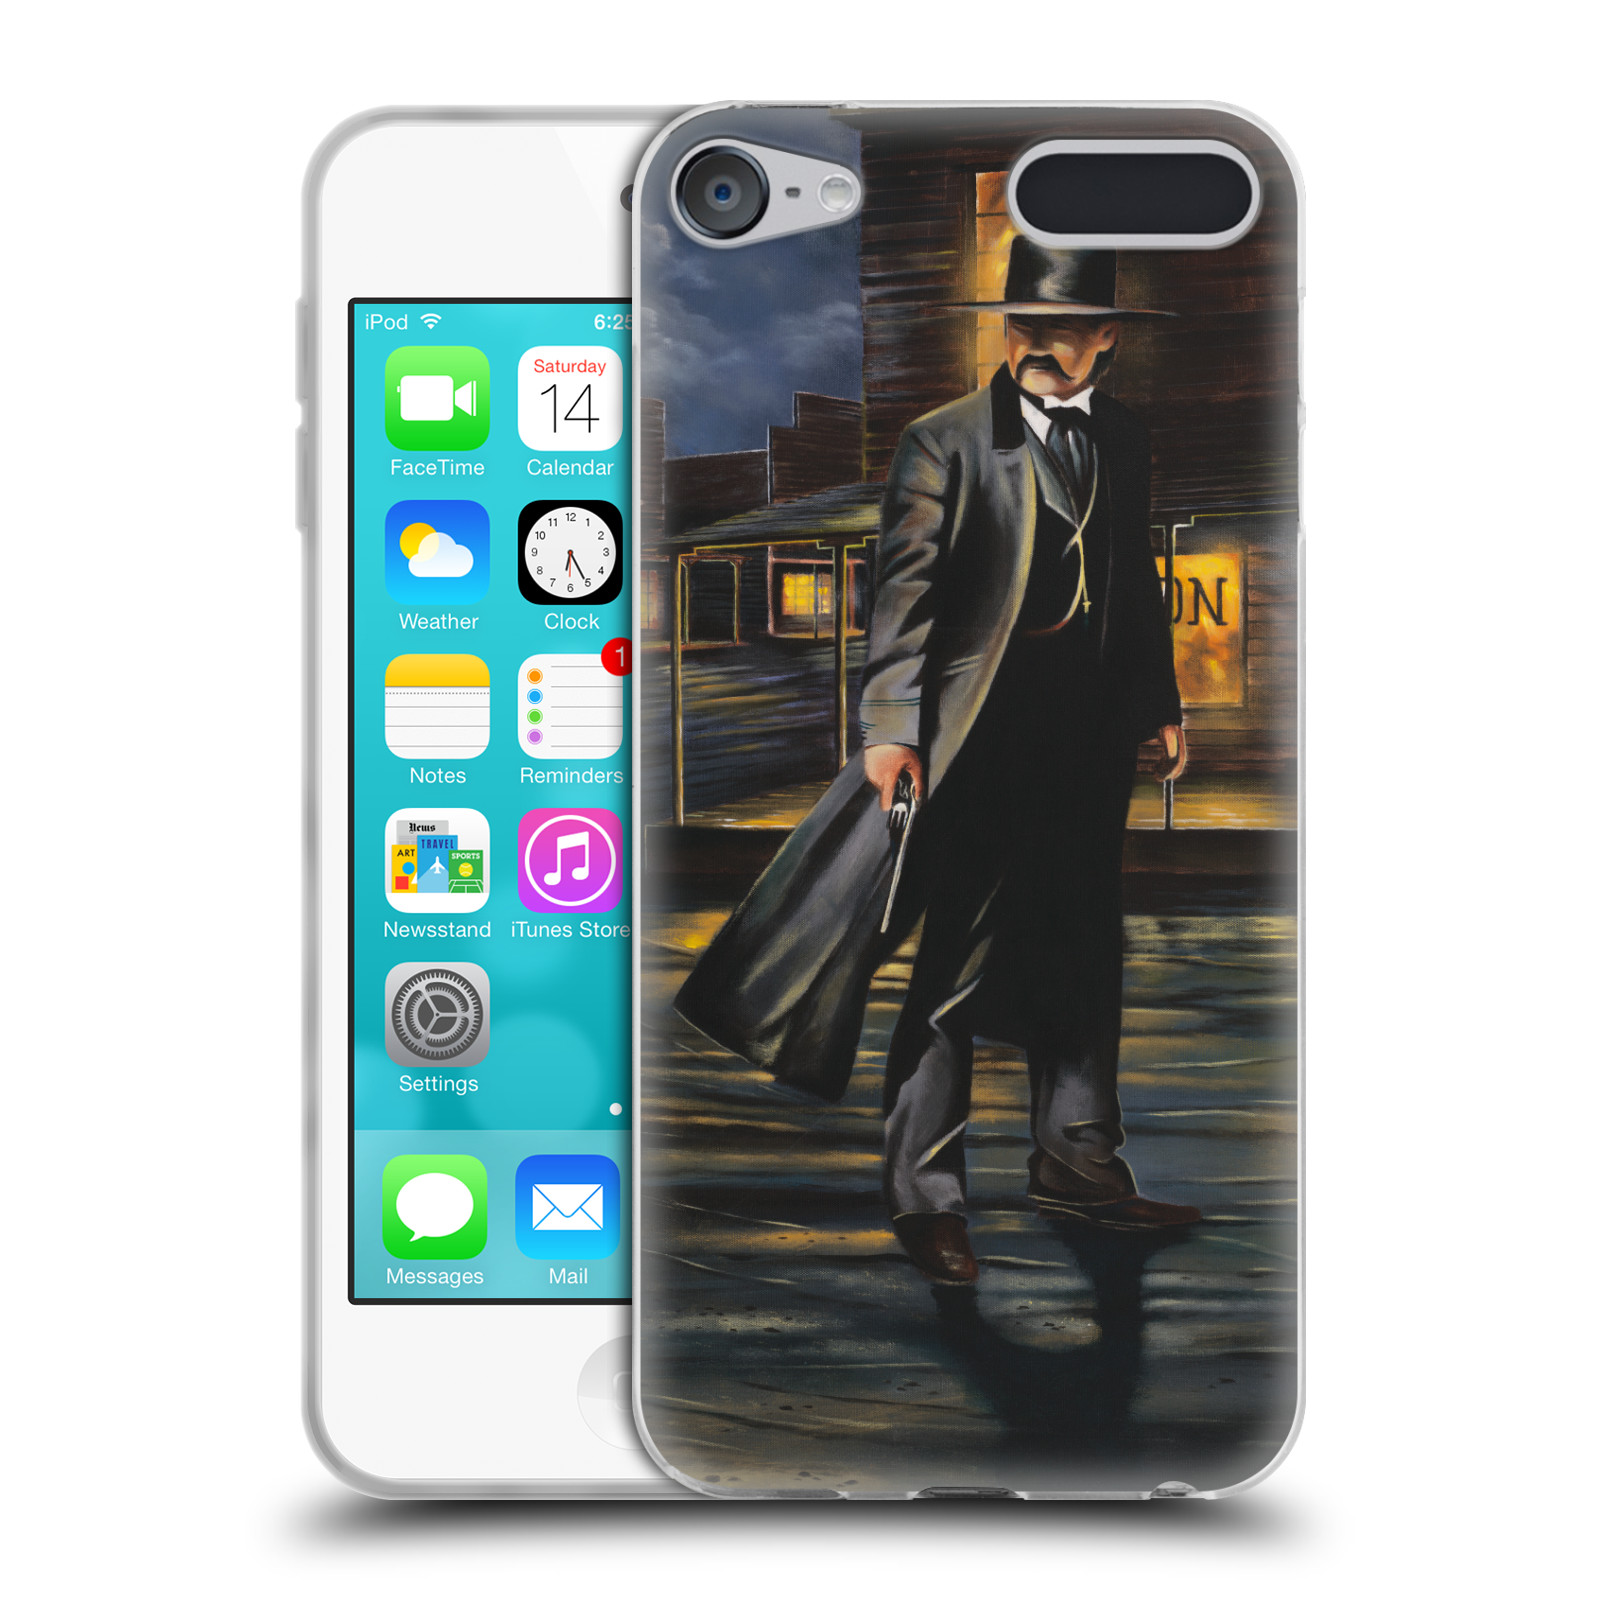 OFFICIAL-GENO-PEOPLES-ART-LIFE-SOFT-GEL-CASE-FOR-APPLE-iPOD-TOUCH-MP3